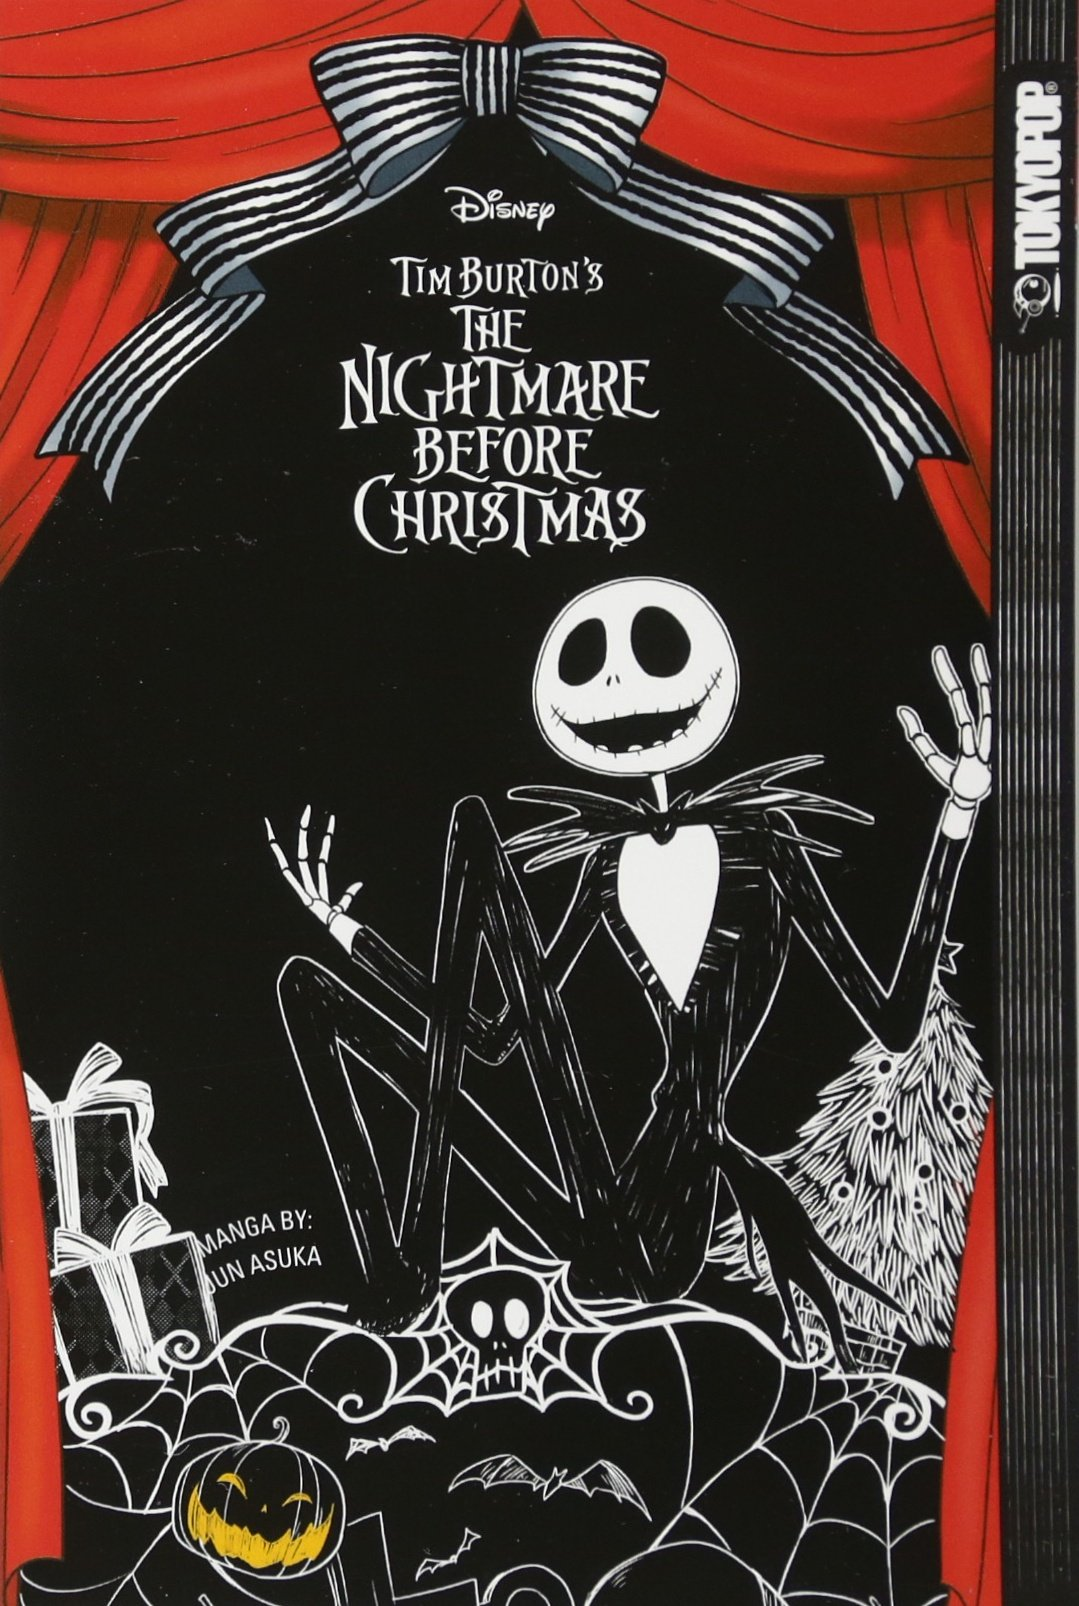 Tim Burton Nightmare Before Christmas Artwork.Disney Manga Tim Burton S The Nightmare Before Christmas